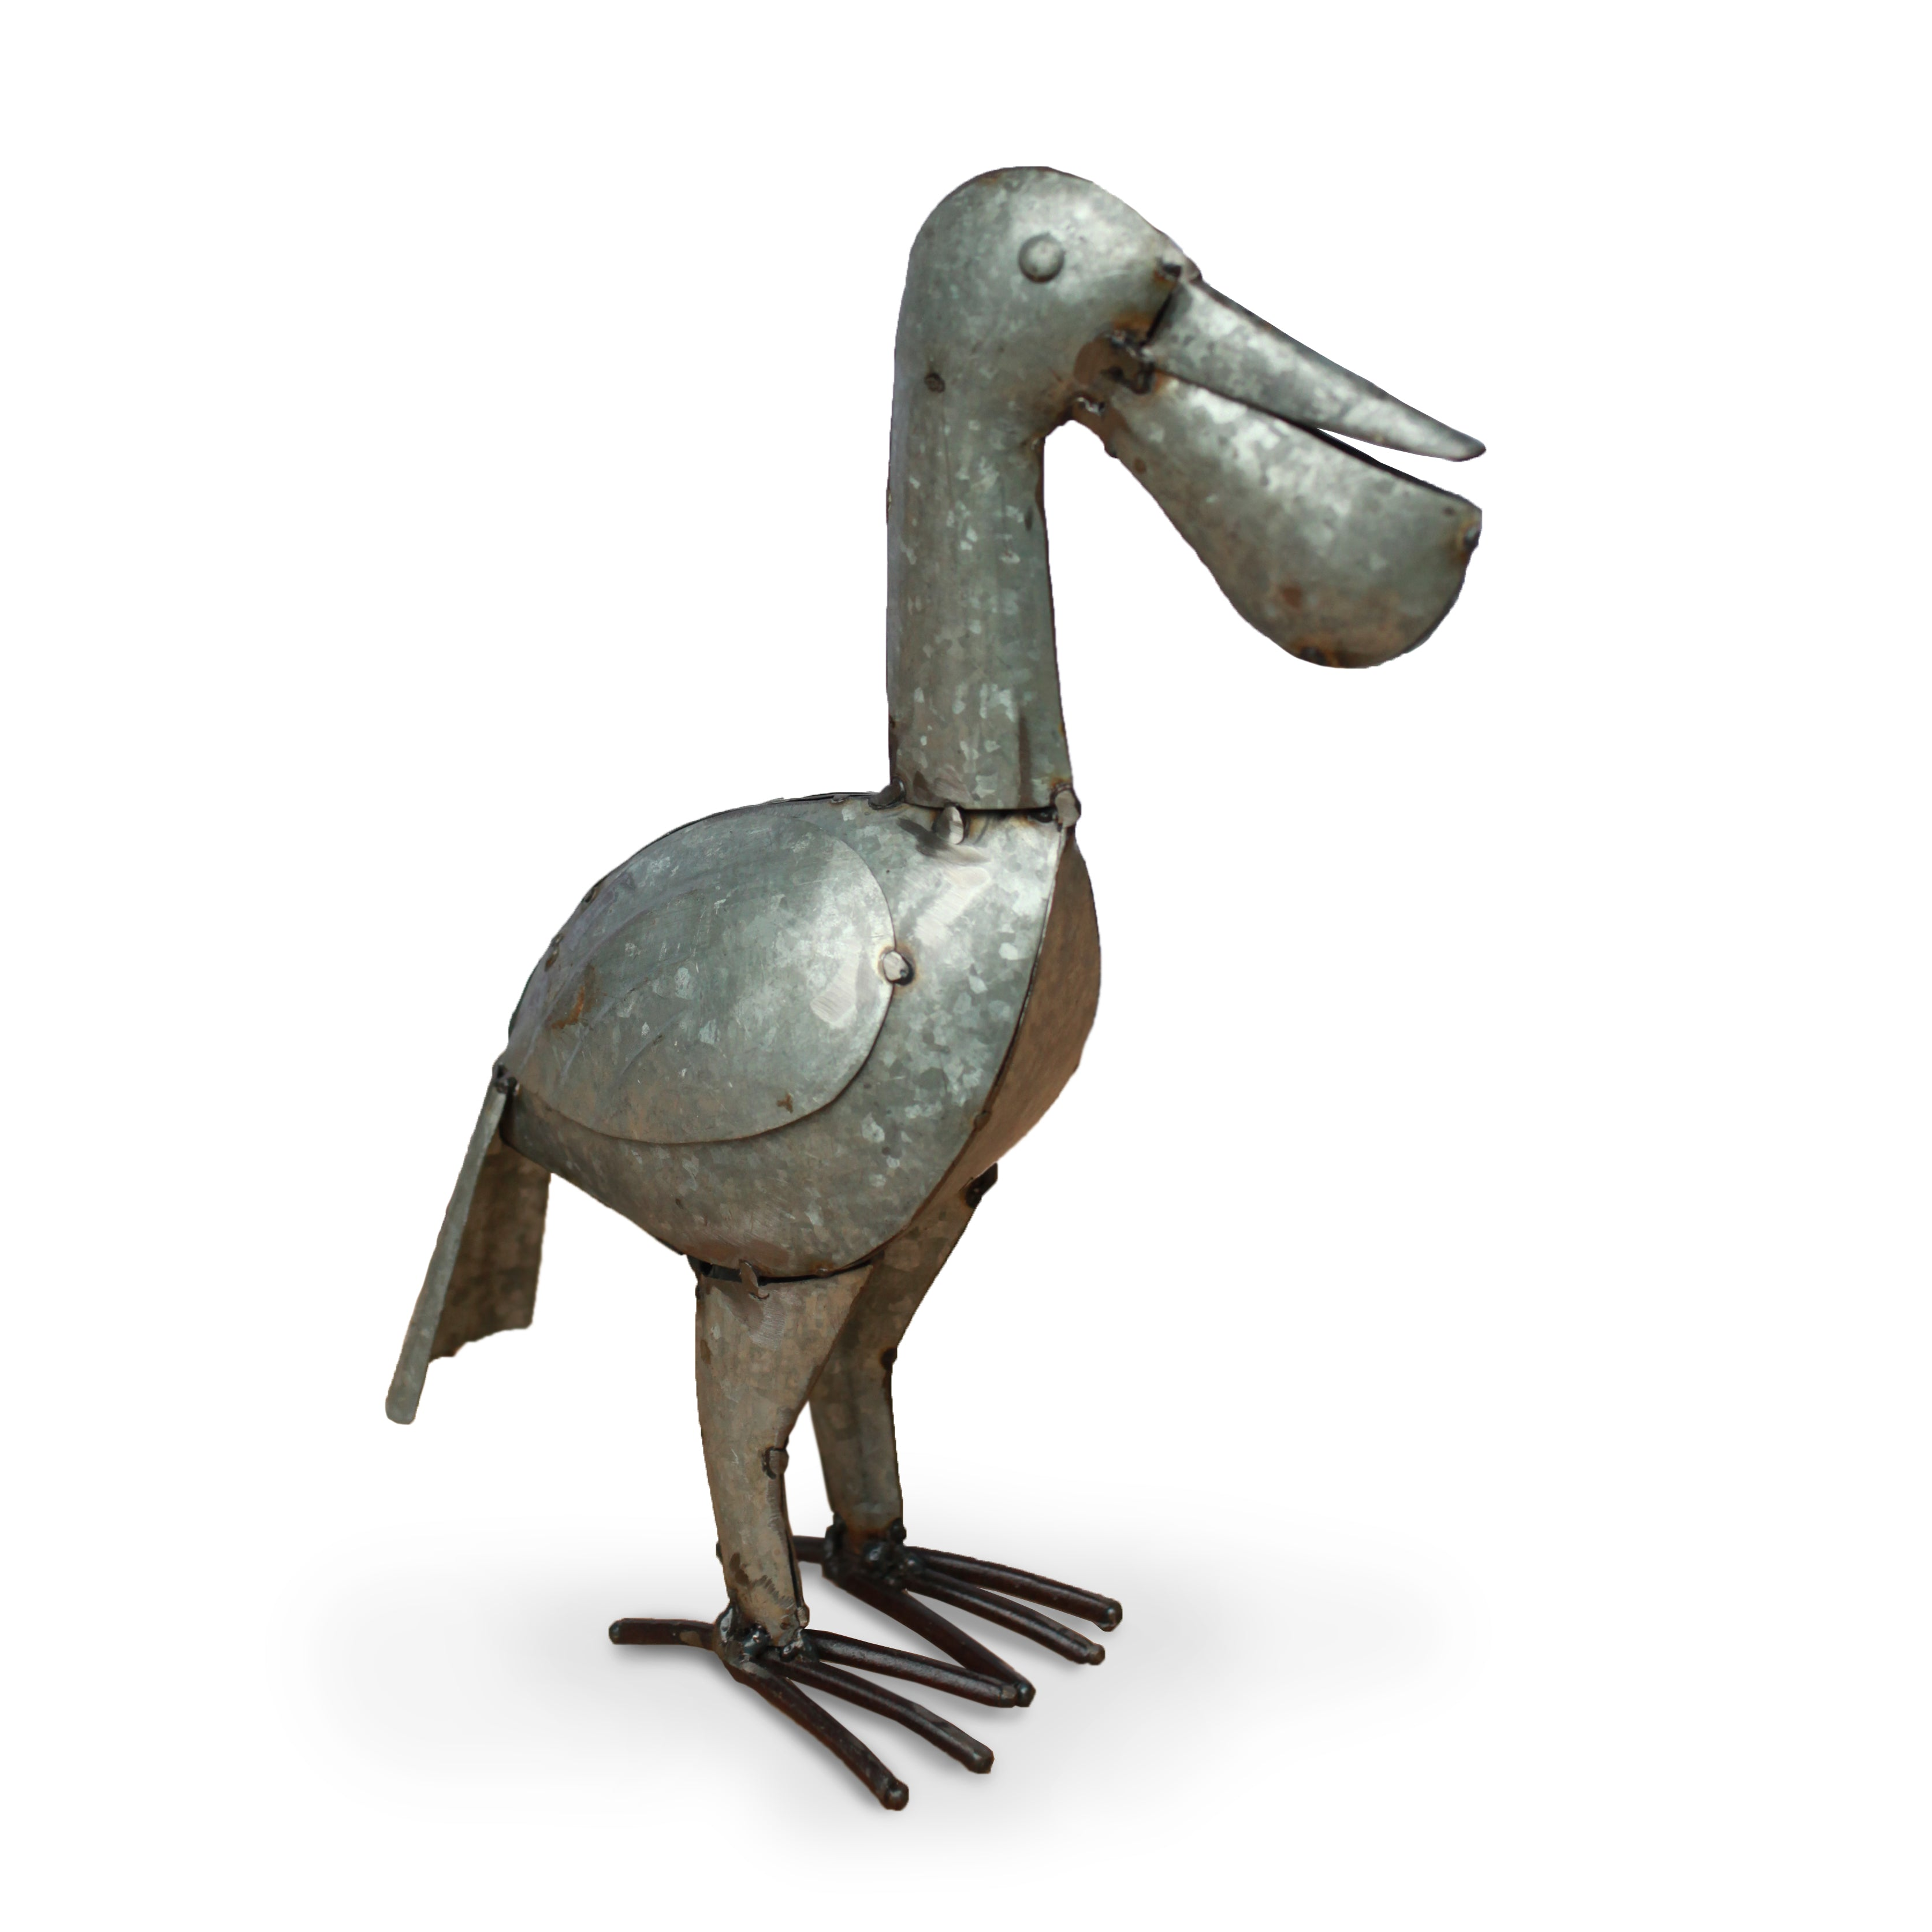 Recycled Garden Pelican | Upcycled, Recycled, Repurposed, Reimagined | Changing Tides